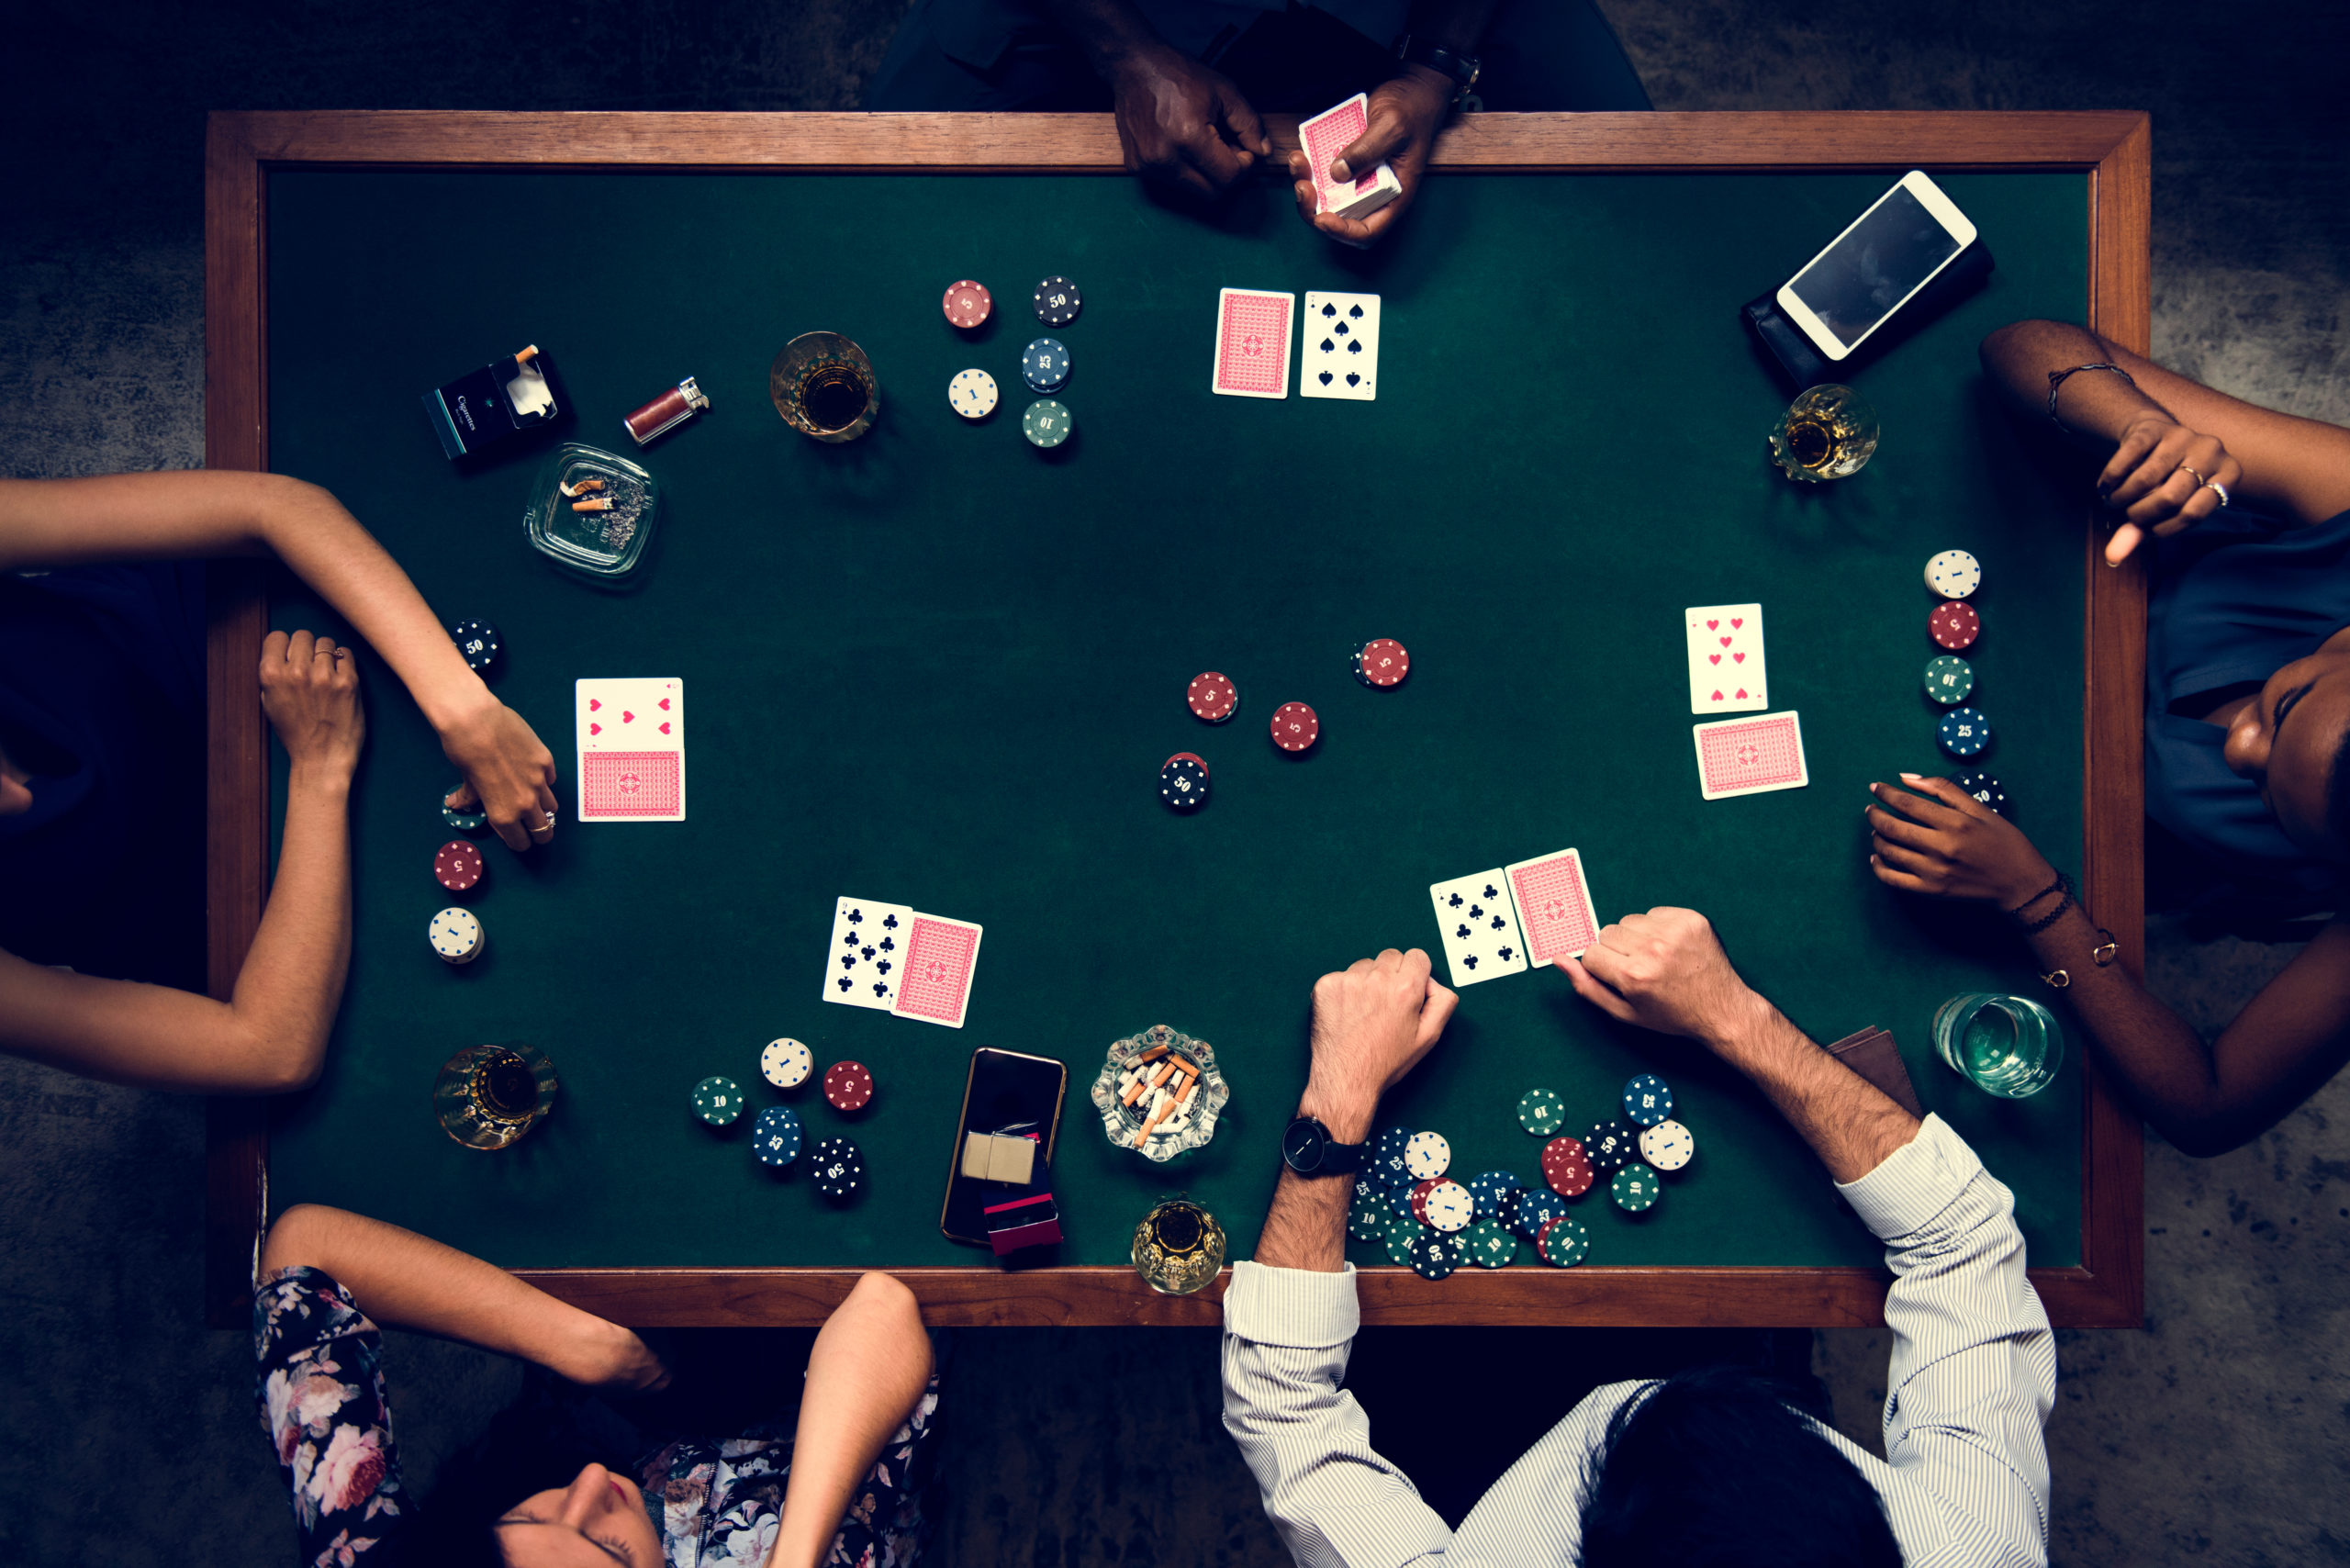 Part Two: More Secrets Revealed About Poker, life, and business